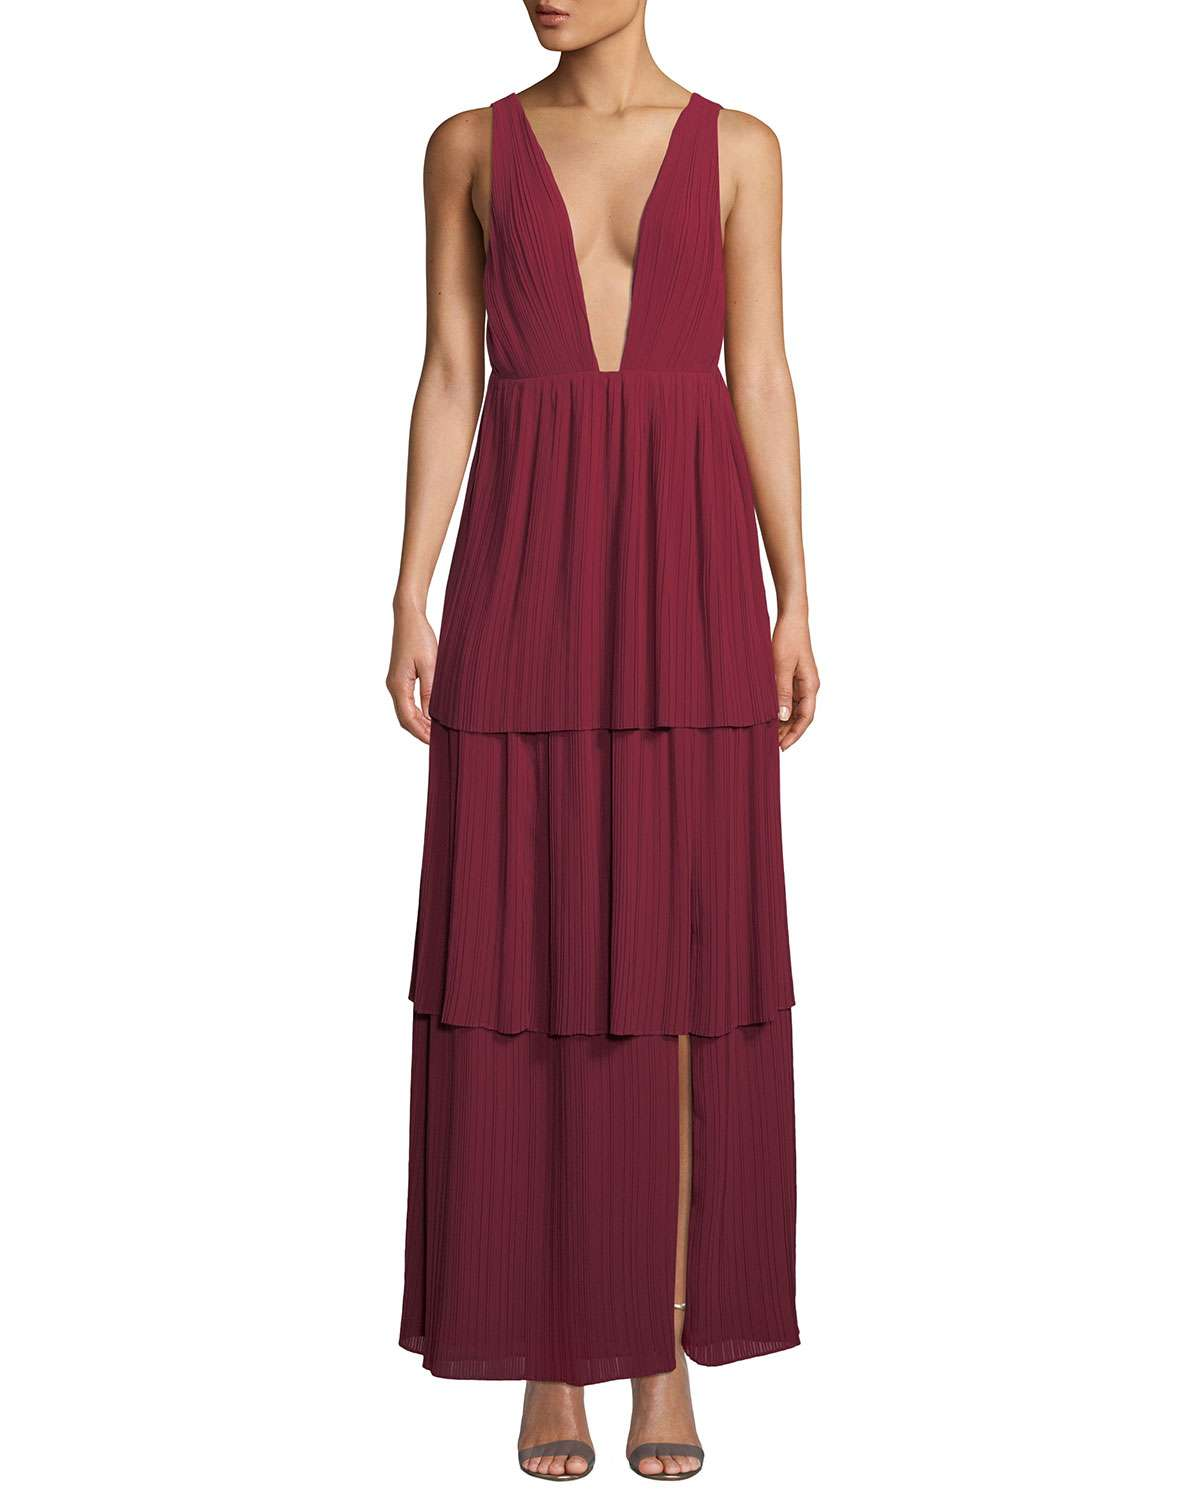 The Callie Plunging-Neck Tiered Gown